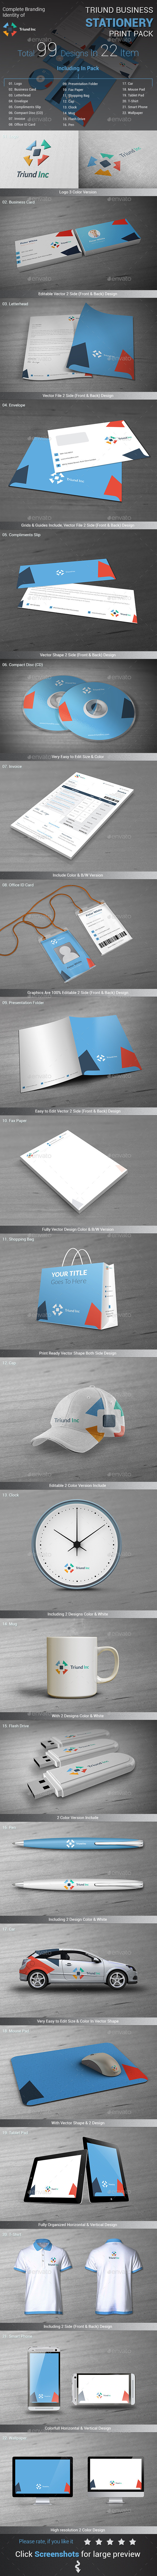 Triund Business Stationery Print Pack - Stationery Print Templates